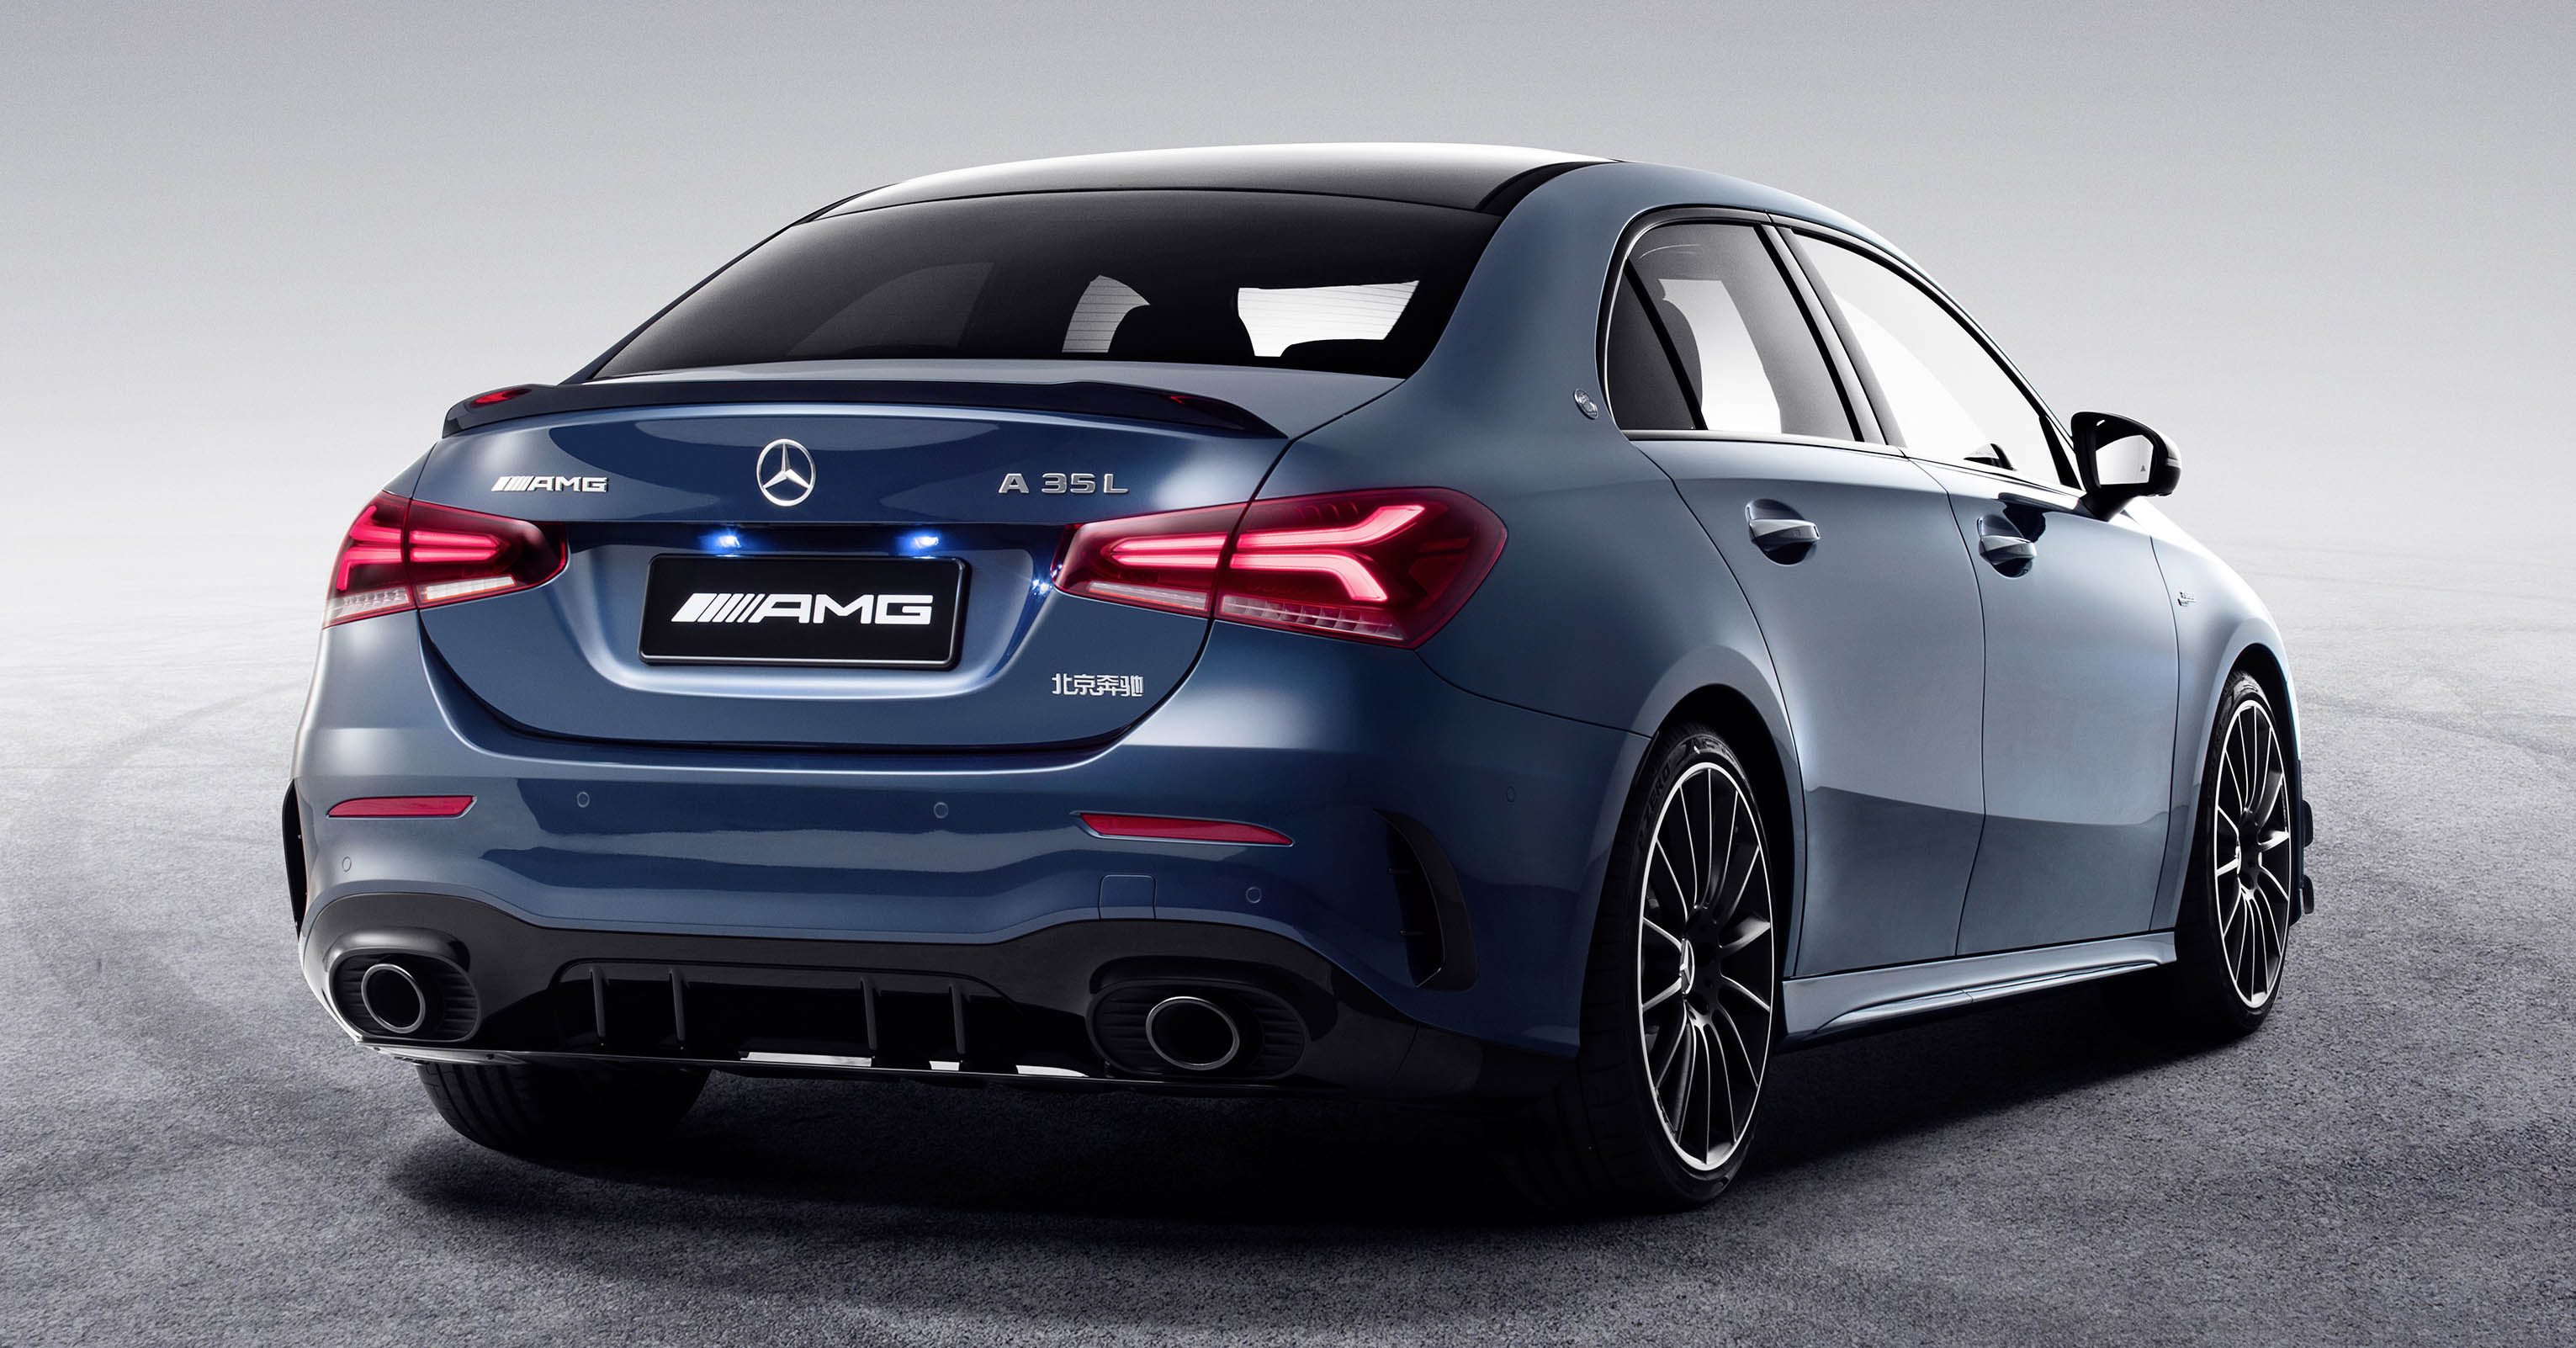 Mercedes-AMG A35 L Sedan Is Called Z177, Adds 60mm in ...